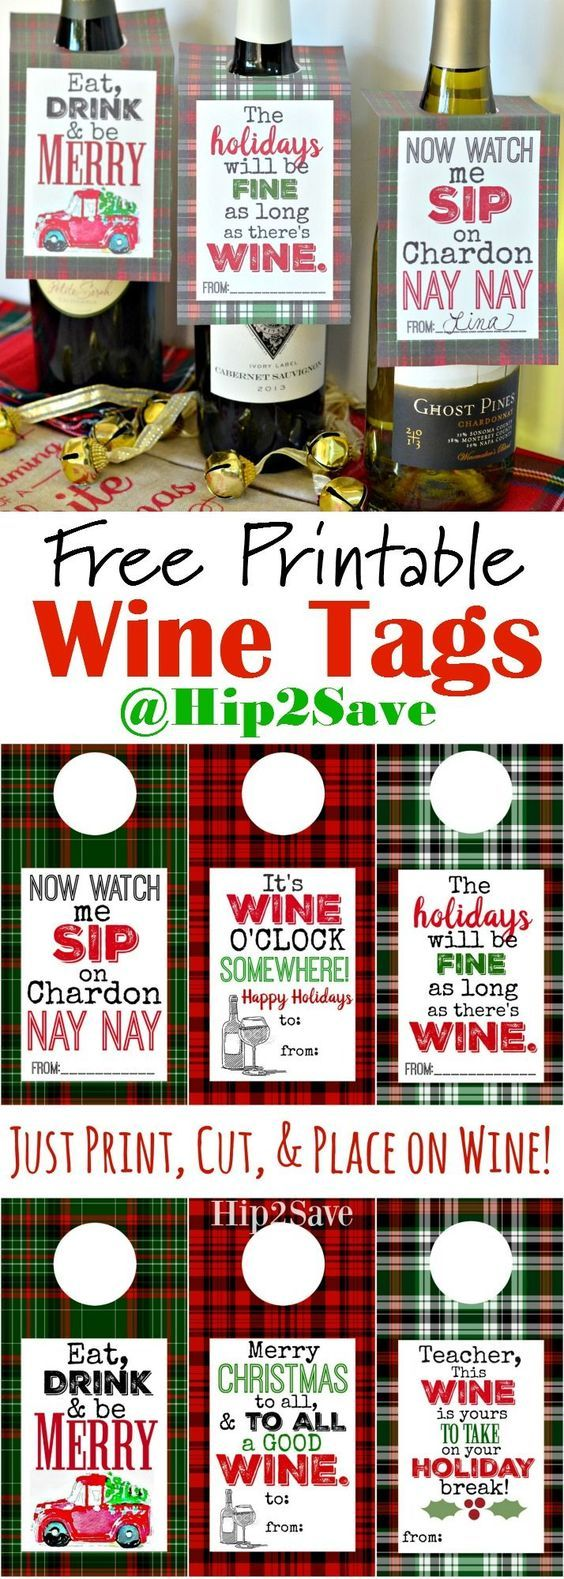 So fun for the upcoming Holidays!! Perfect for a hostess gift or Christmas gifts for family & friends.